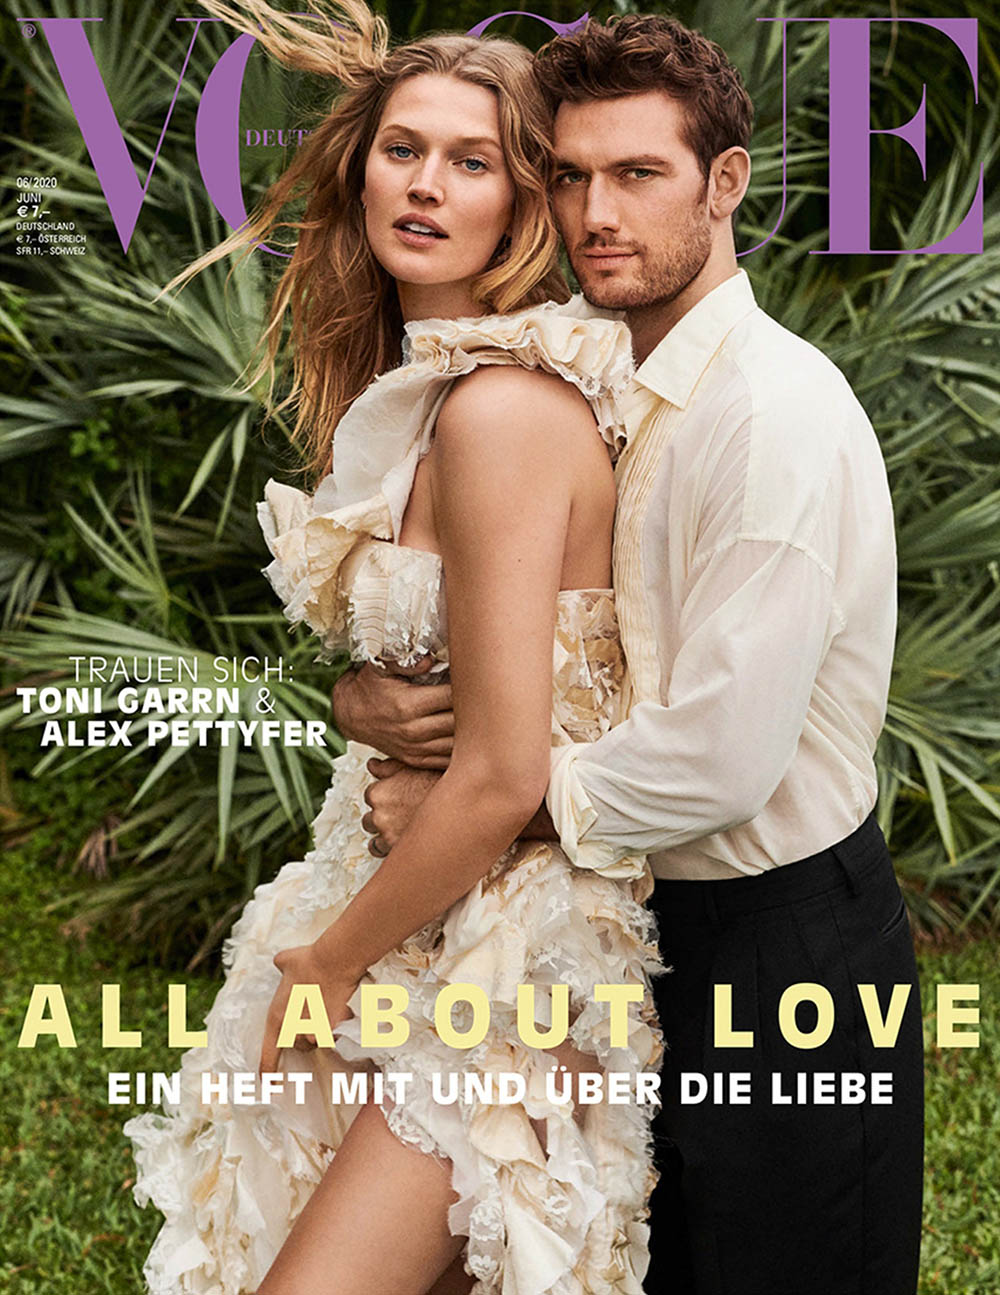 Toni Garrn and Alex Pettyfer cover Vogue Germany June 2020 by Giampaolo Sgura